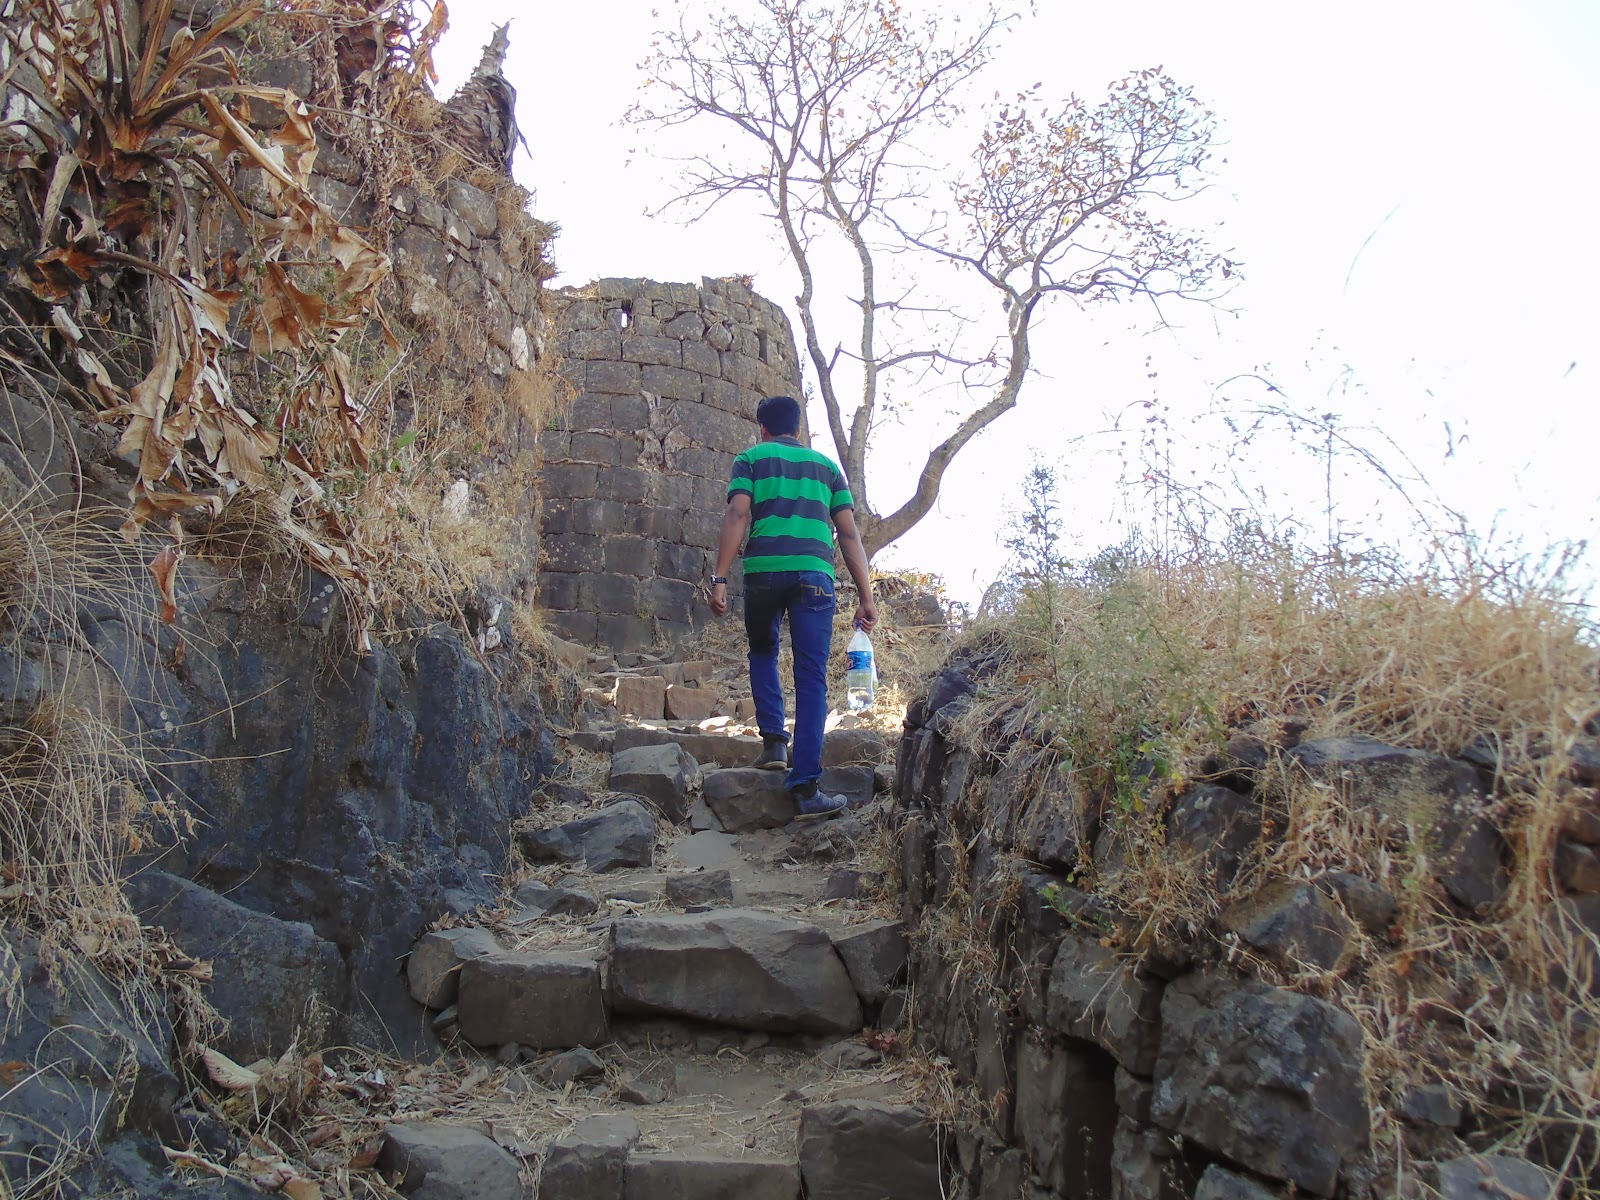 Tikona fort around pune